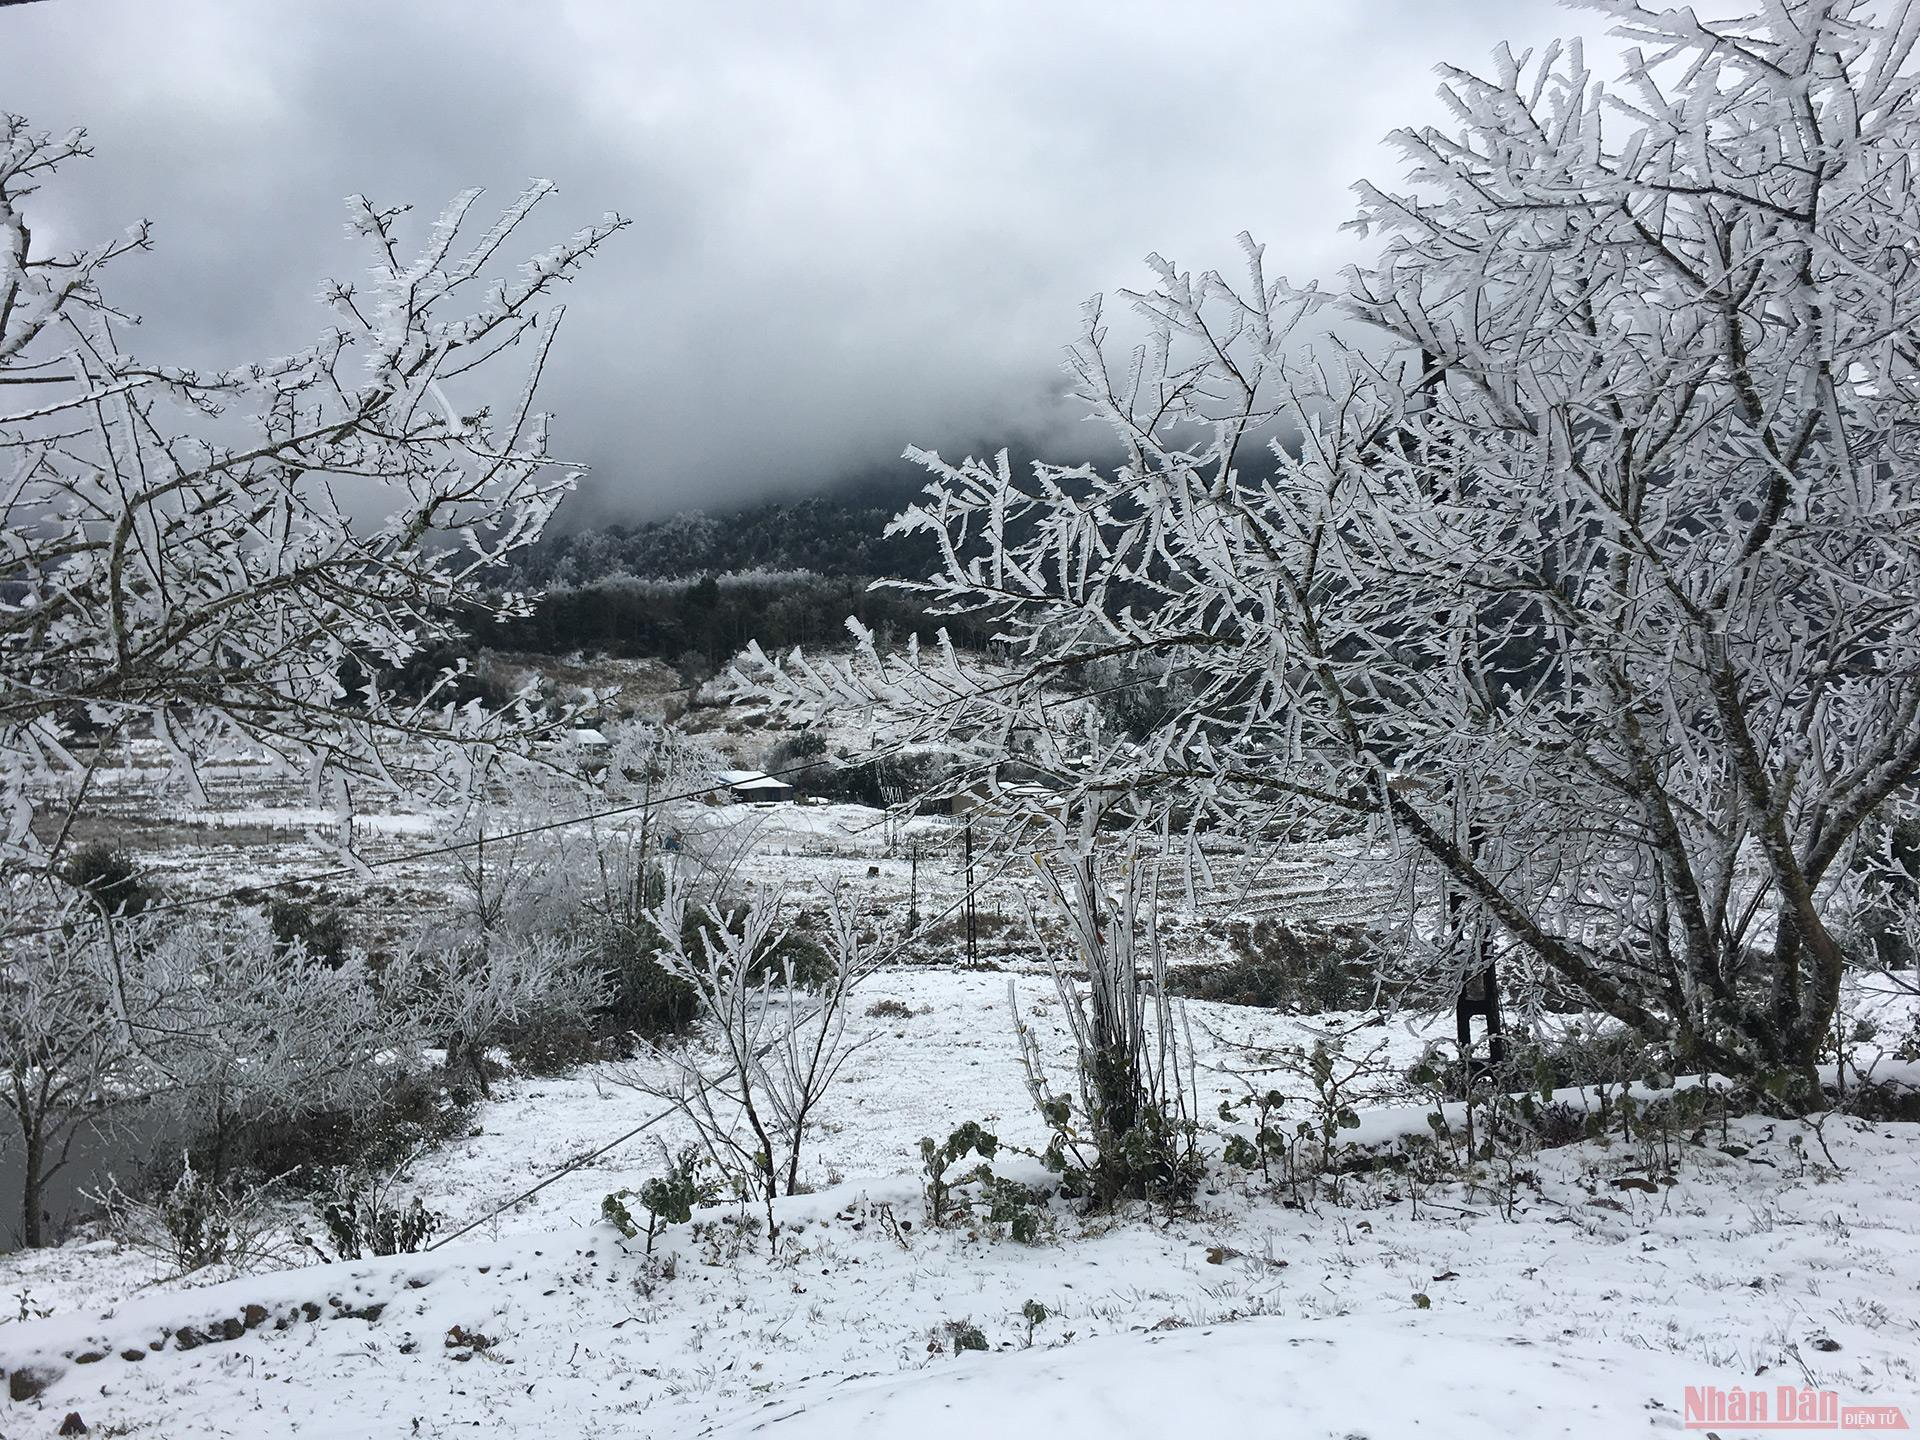 Northern Vietnam mountains engulfed in white snow